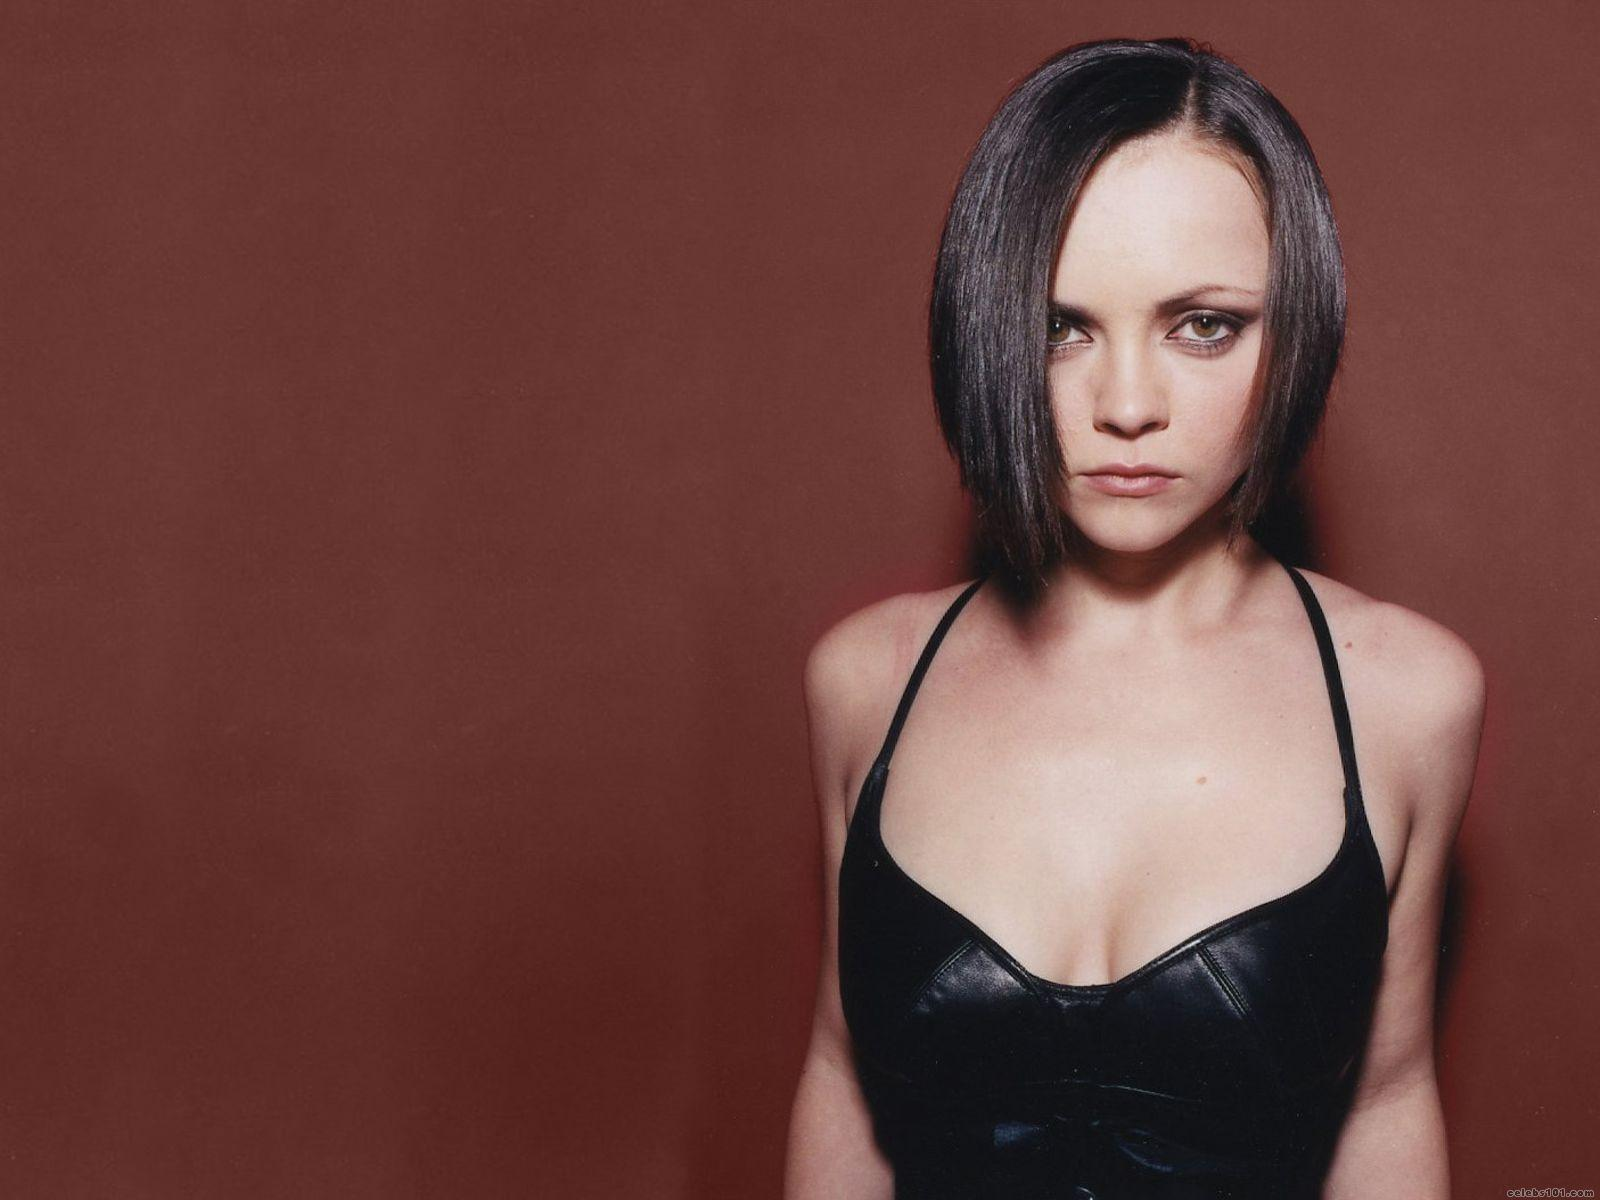 bing images of christina ricci